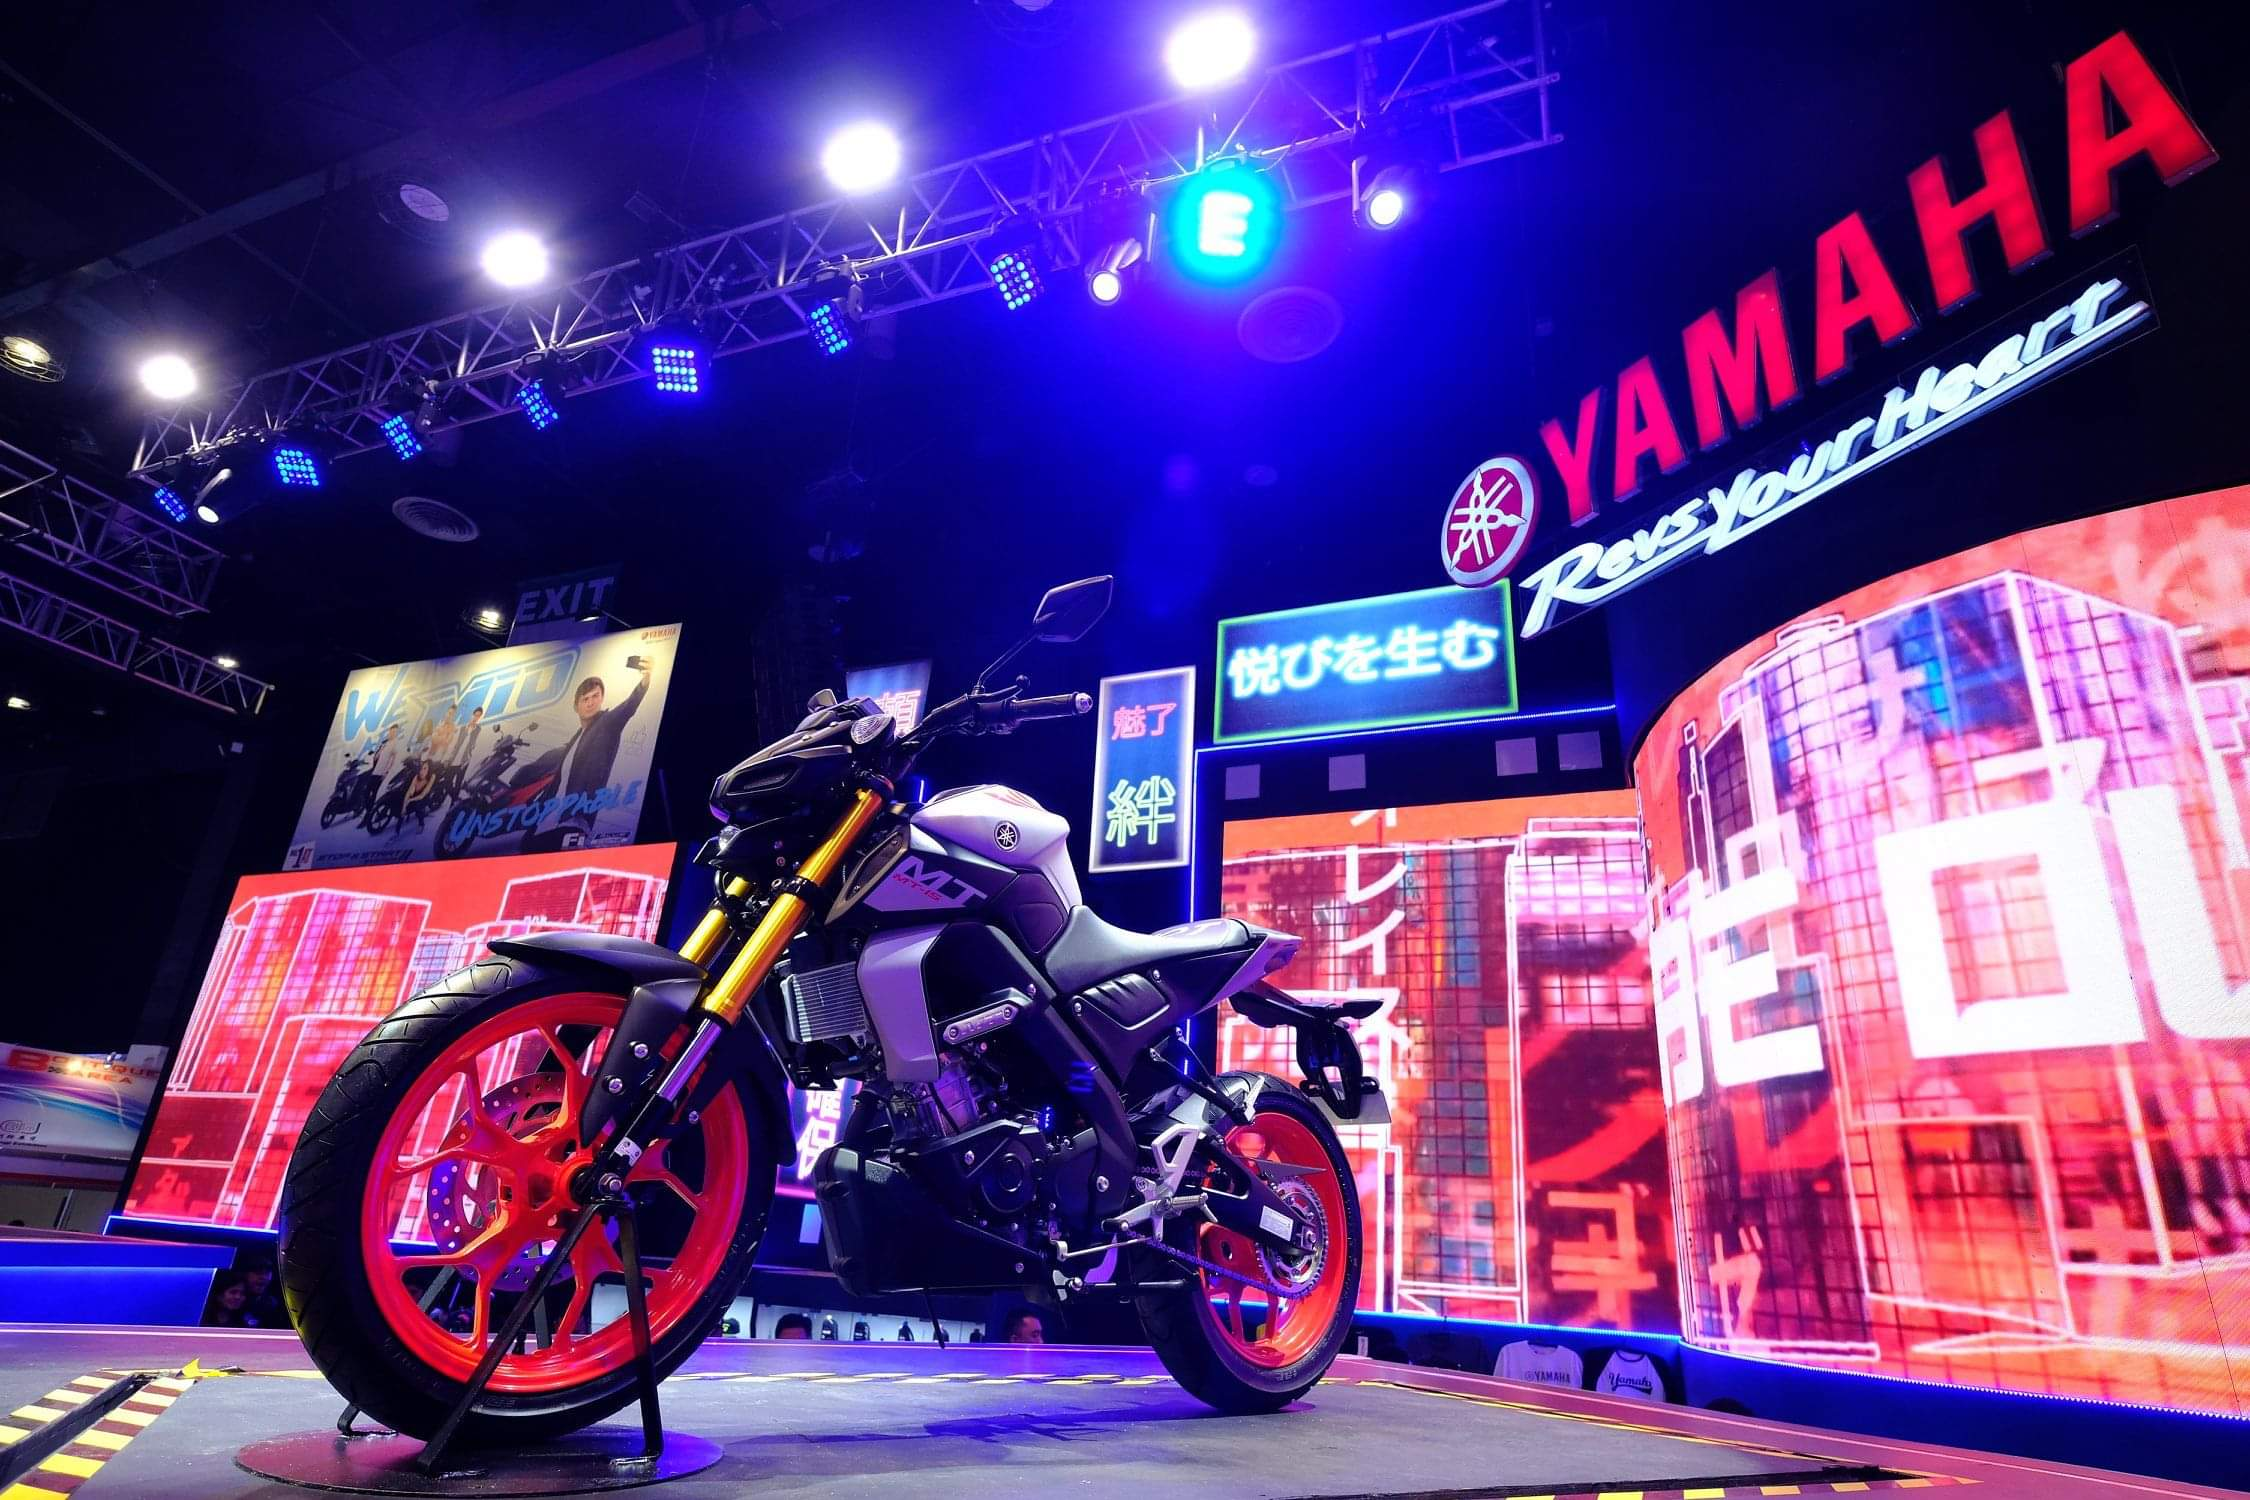 MT-15 unveiled at the IR Bikefest